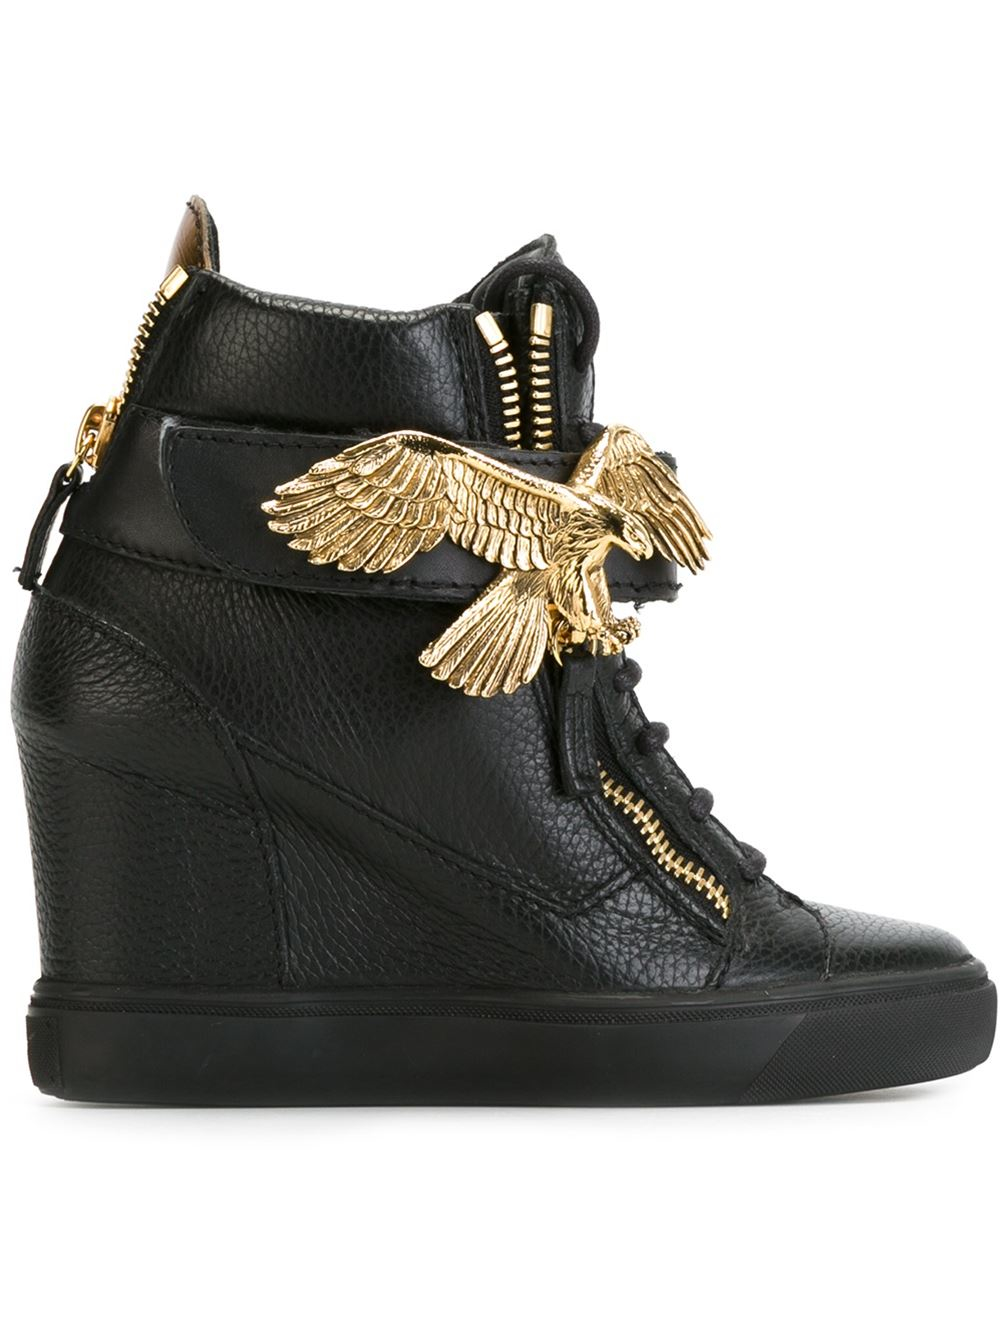 Giuseppe zanotti Eagle Print Wedge Heel Hi-top Sneakers in Black ...